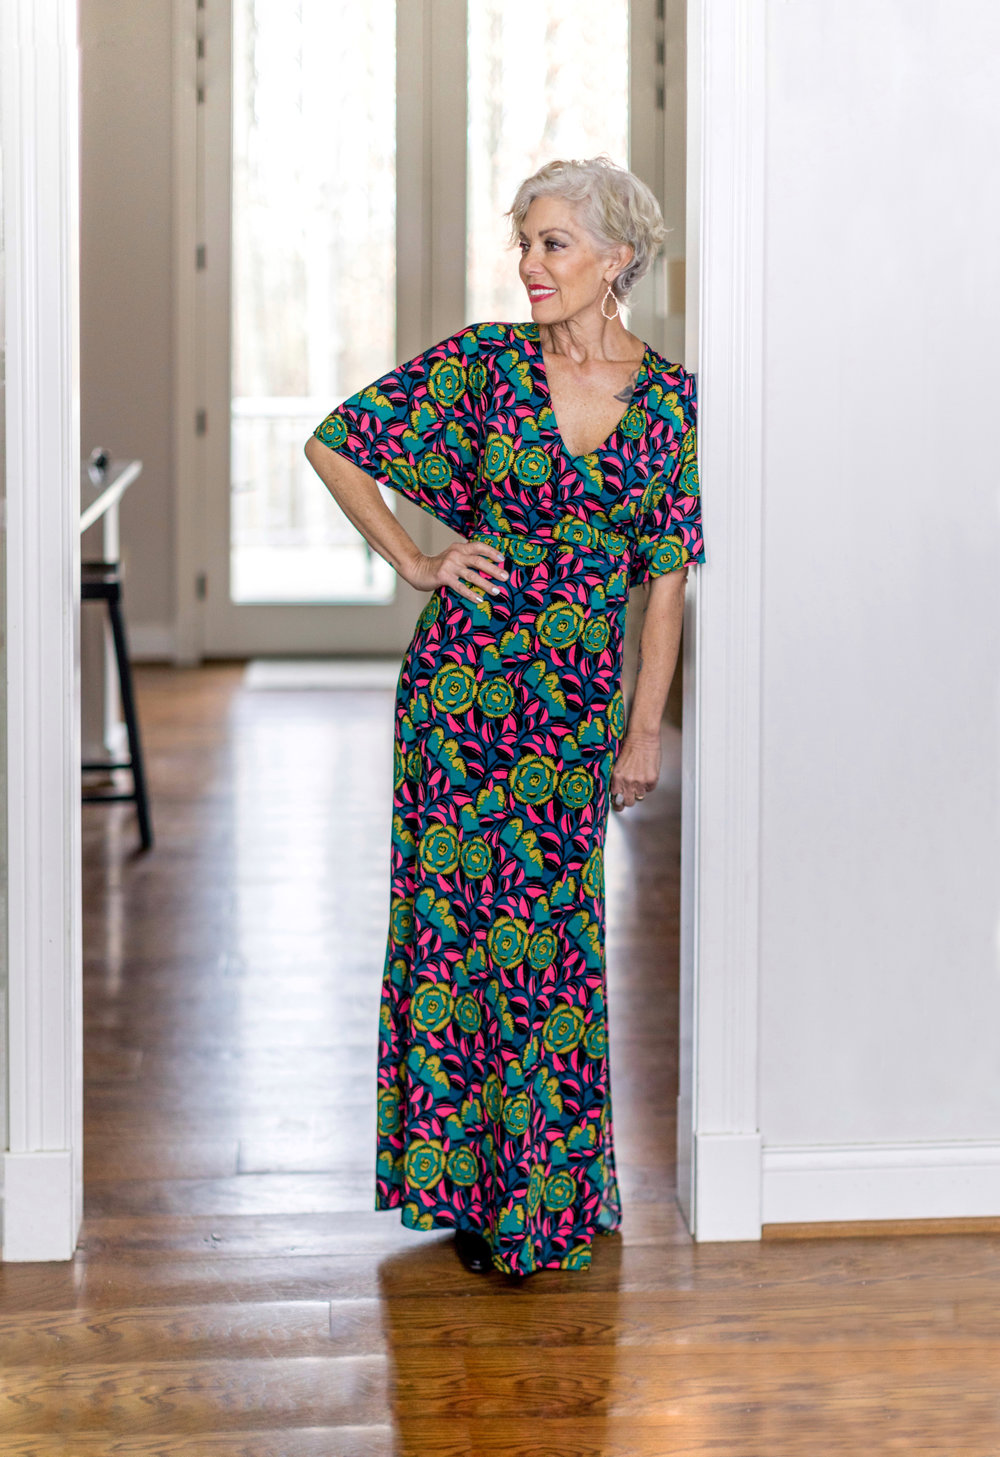 Rosie Caftan Maxi - Reviewed by Deby